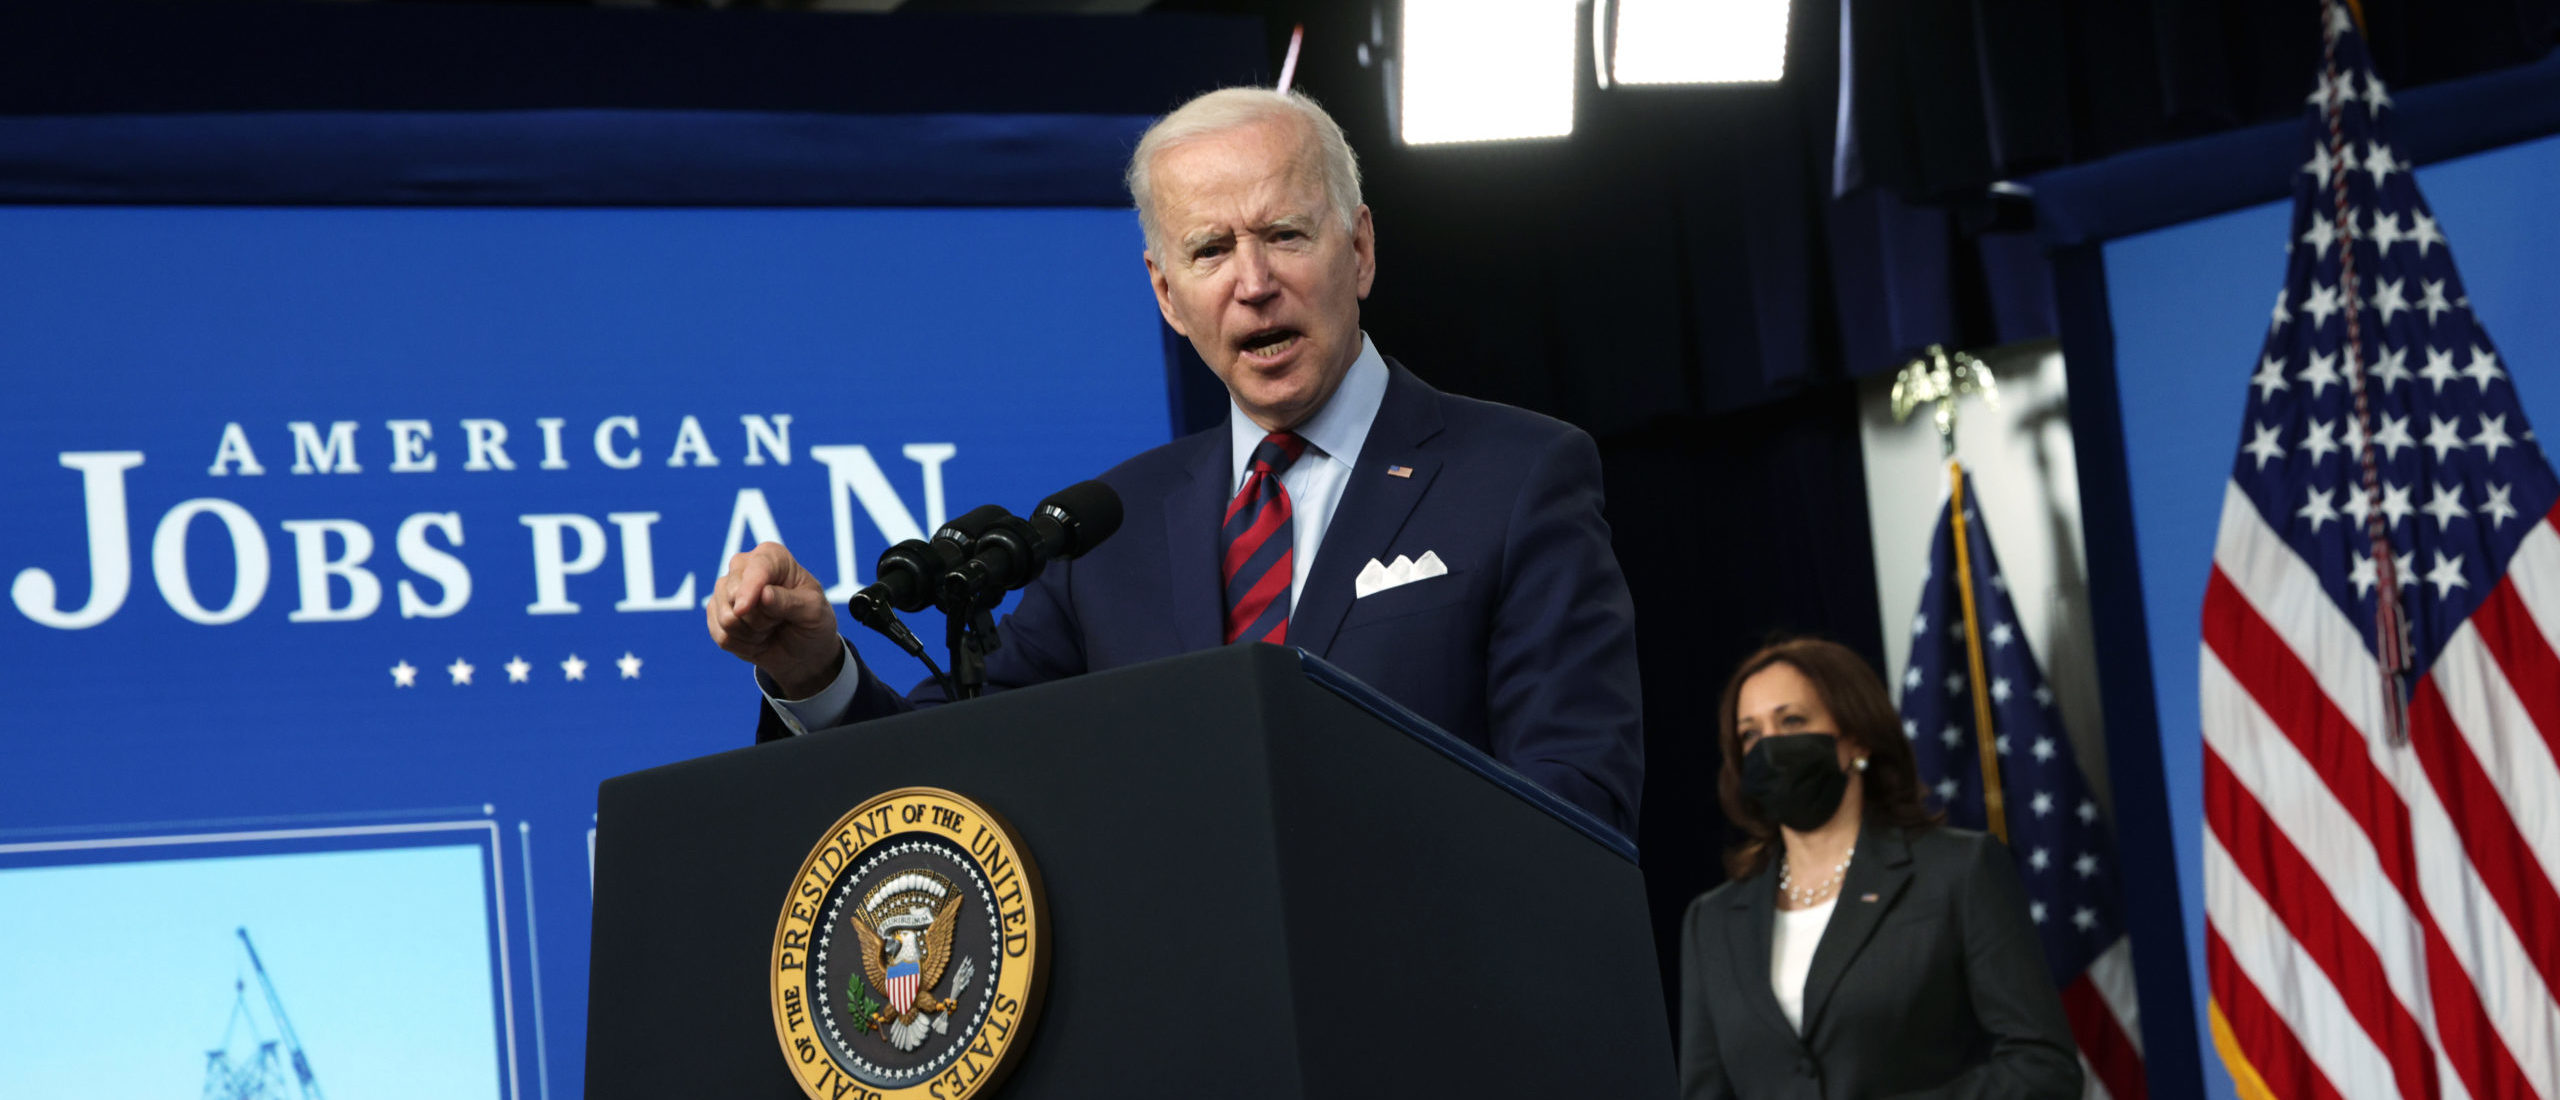 """WASHINGTON, DC - APRIL 07: U.S. President Joe Biden speaks as Vice President Kamala Harris listens during an event at the South Court Auditorium at Eisenhower Executive Office Building April 7, 2021 in Washington DC. President Biden delivered remarks on the administration's """"American Jobs Plan."""" (Photo by Alex Wong/Getty Images)"""